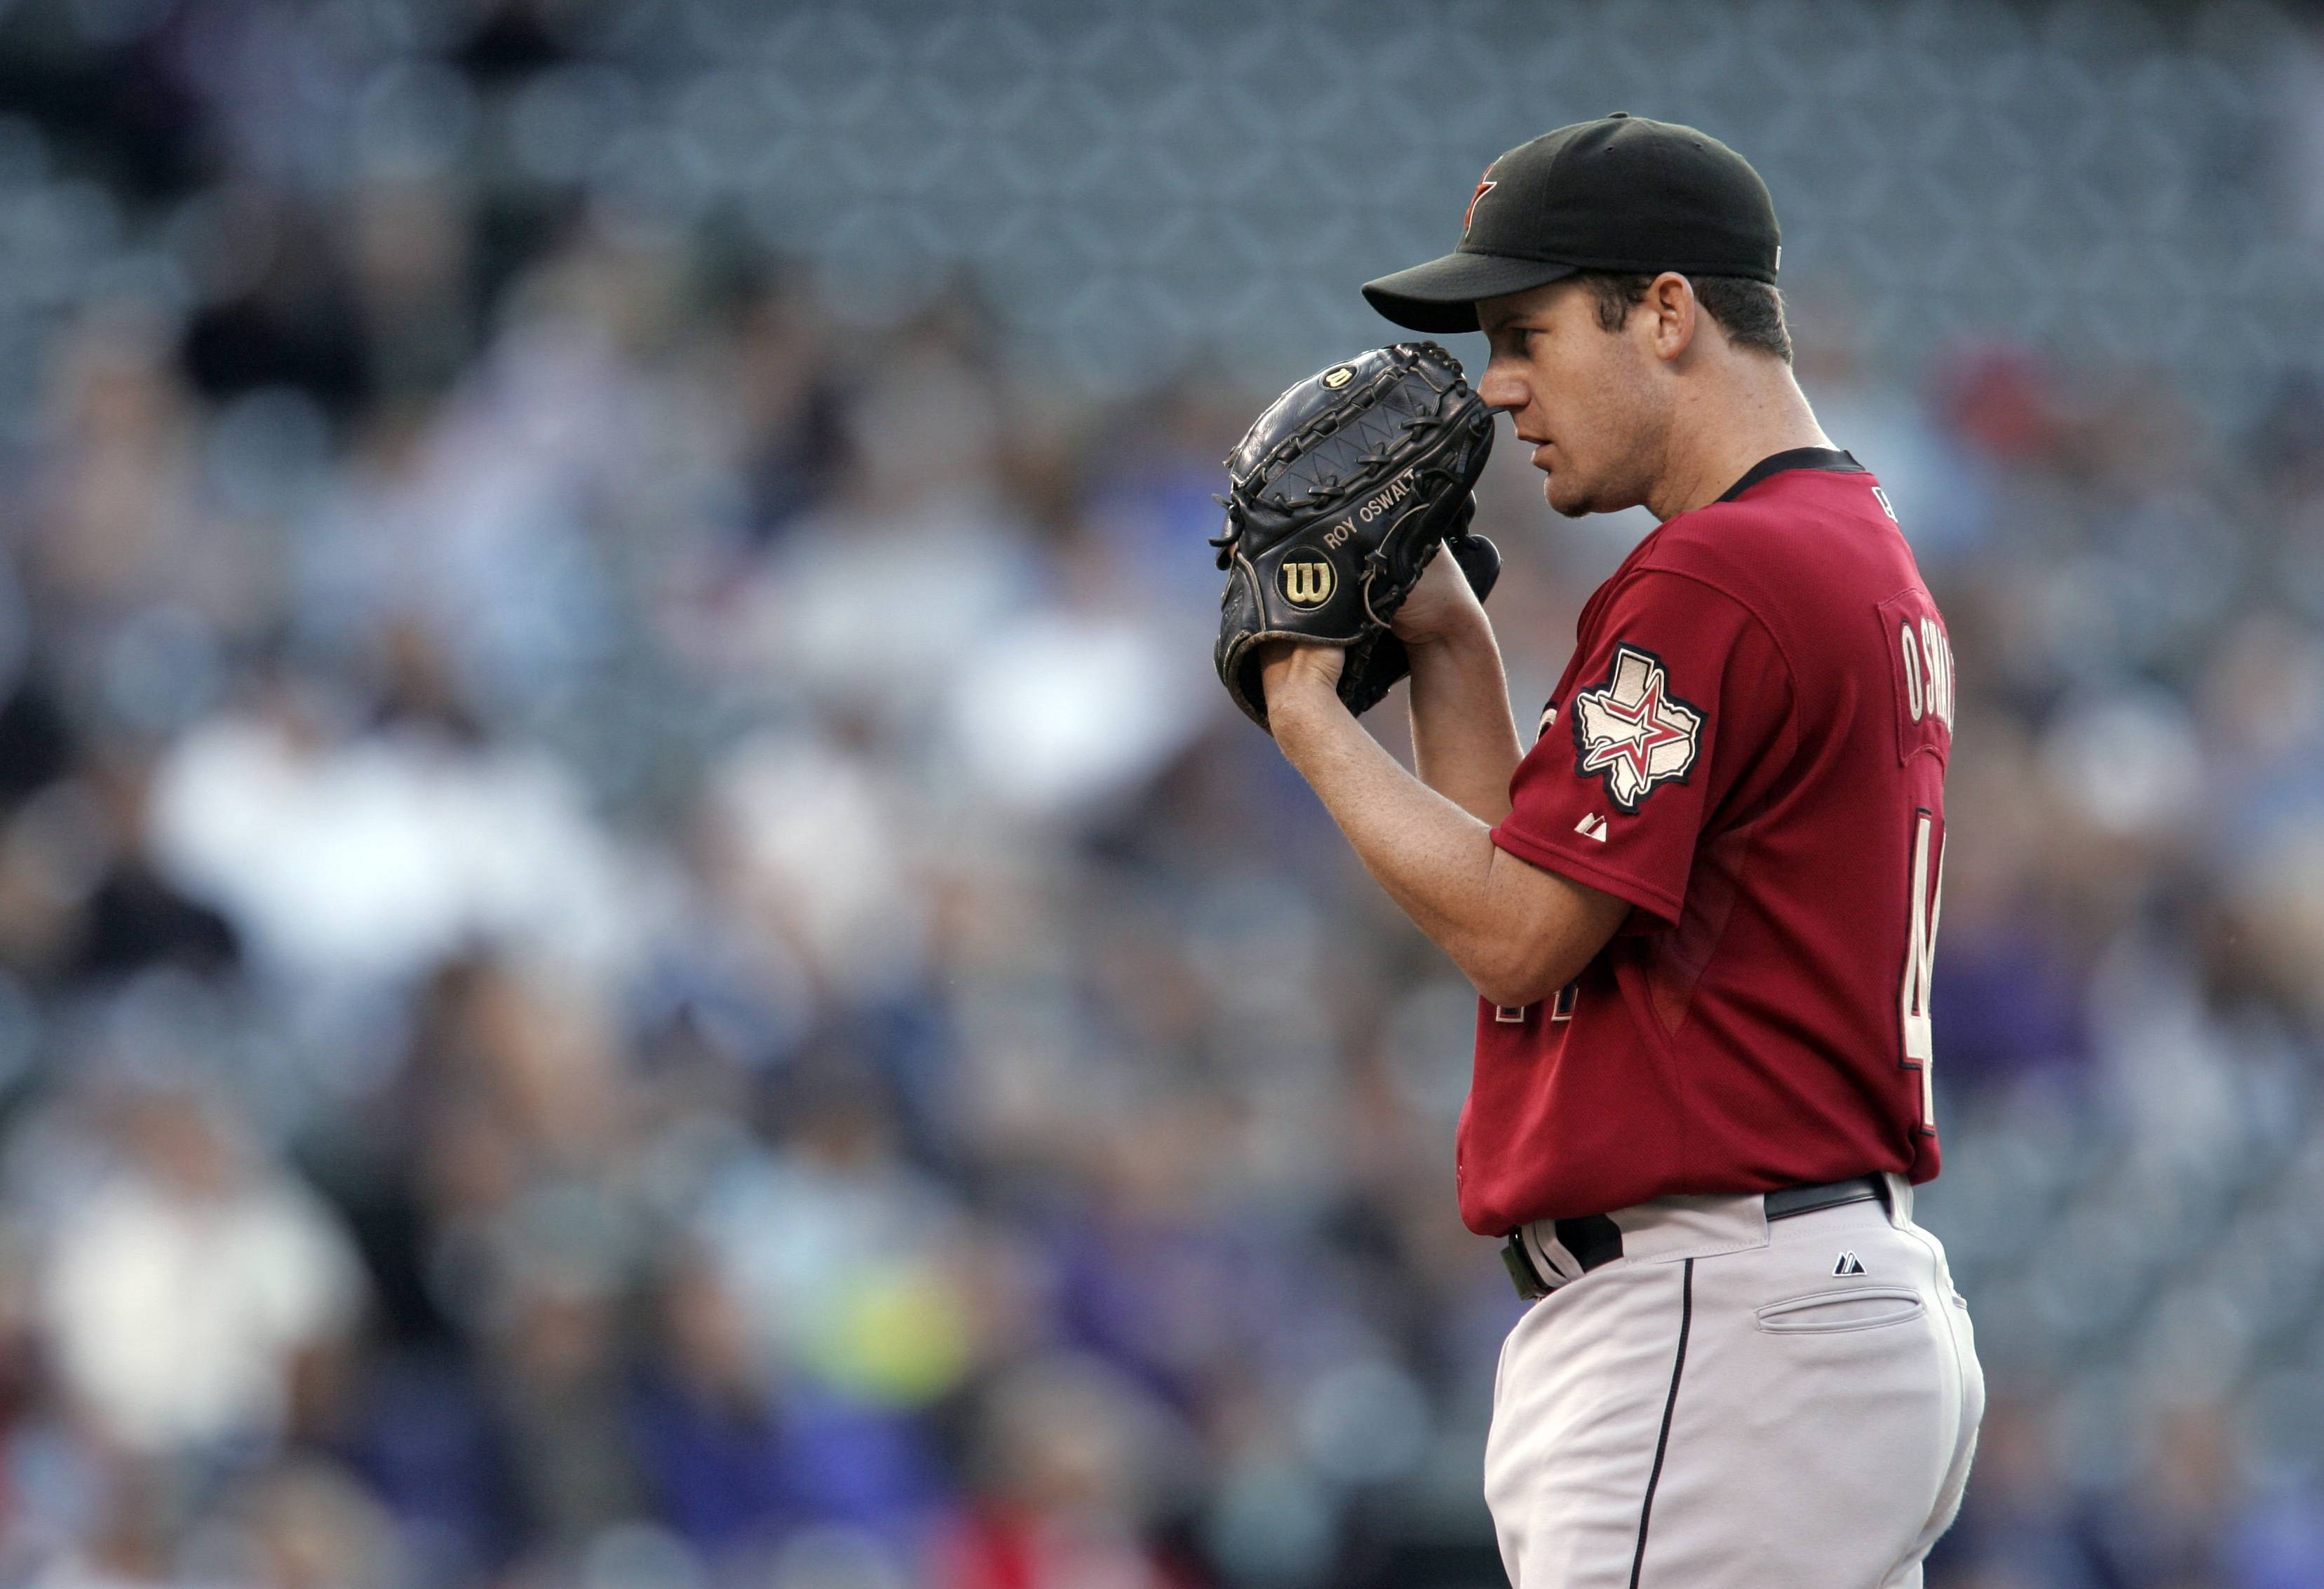 In this Sept. 6, 2008, photo, Houston Astros starting pitcher Roy Oswalt prepares to throw to a Colorado Rockies batter during a baseball game in Denver. Oswalt is retiring after 13 major league seasons. Oswalt's agent, Bob Garber, confirmed Oswalt's retirement Tuesday, Feb. 11, 2014, and said the pitcher would come to work for his agency. Oswalt, 36, had a 163-102 career record with a 3.36 ERA. His best season came with Houston in 2004, when he went 20-10 with a 3.49 ERA. (AP Photo/Jack Dempsey)